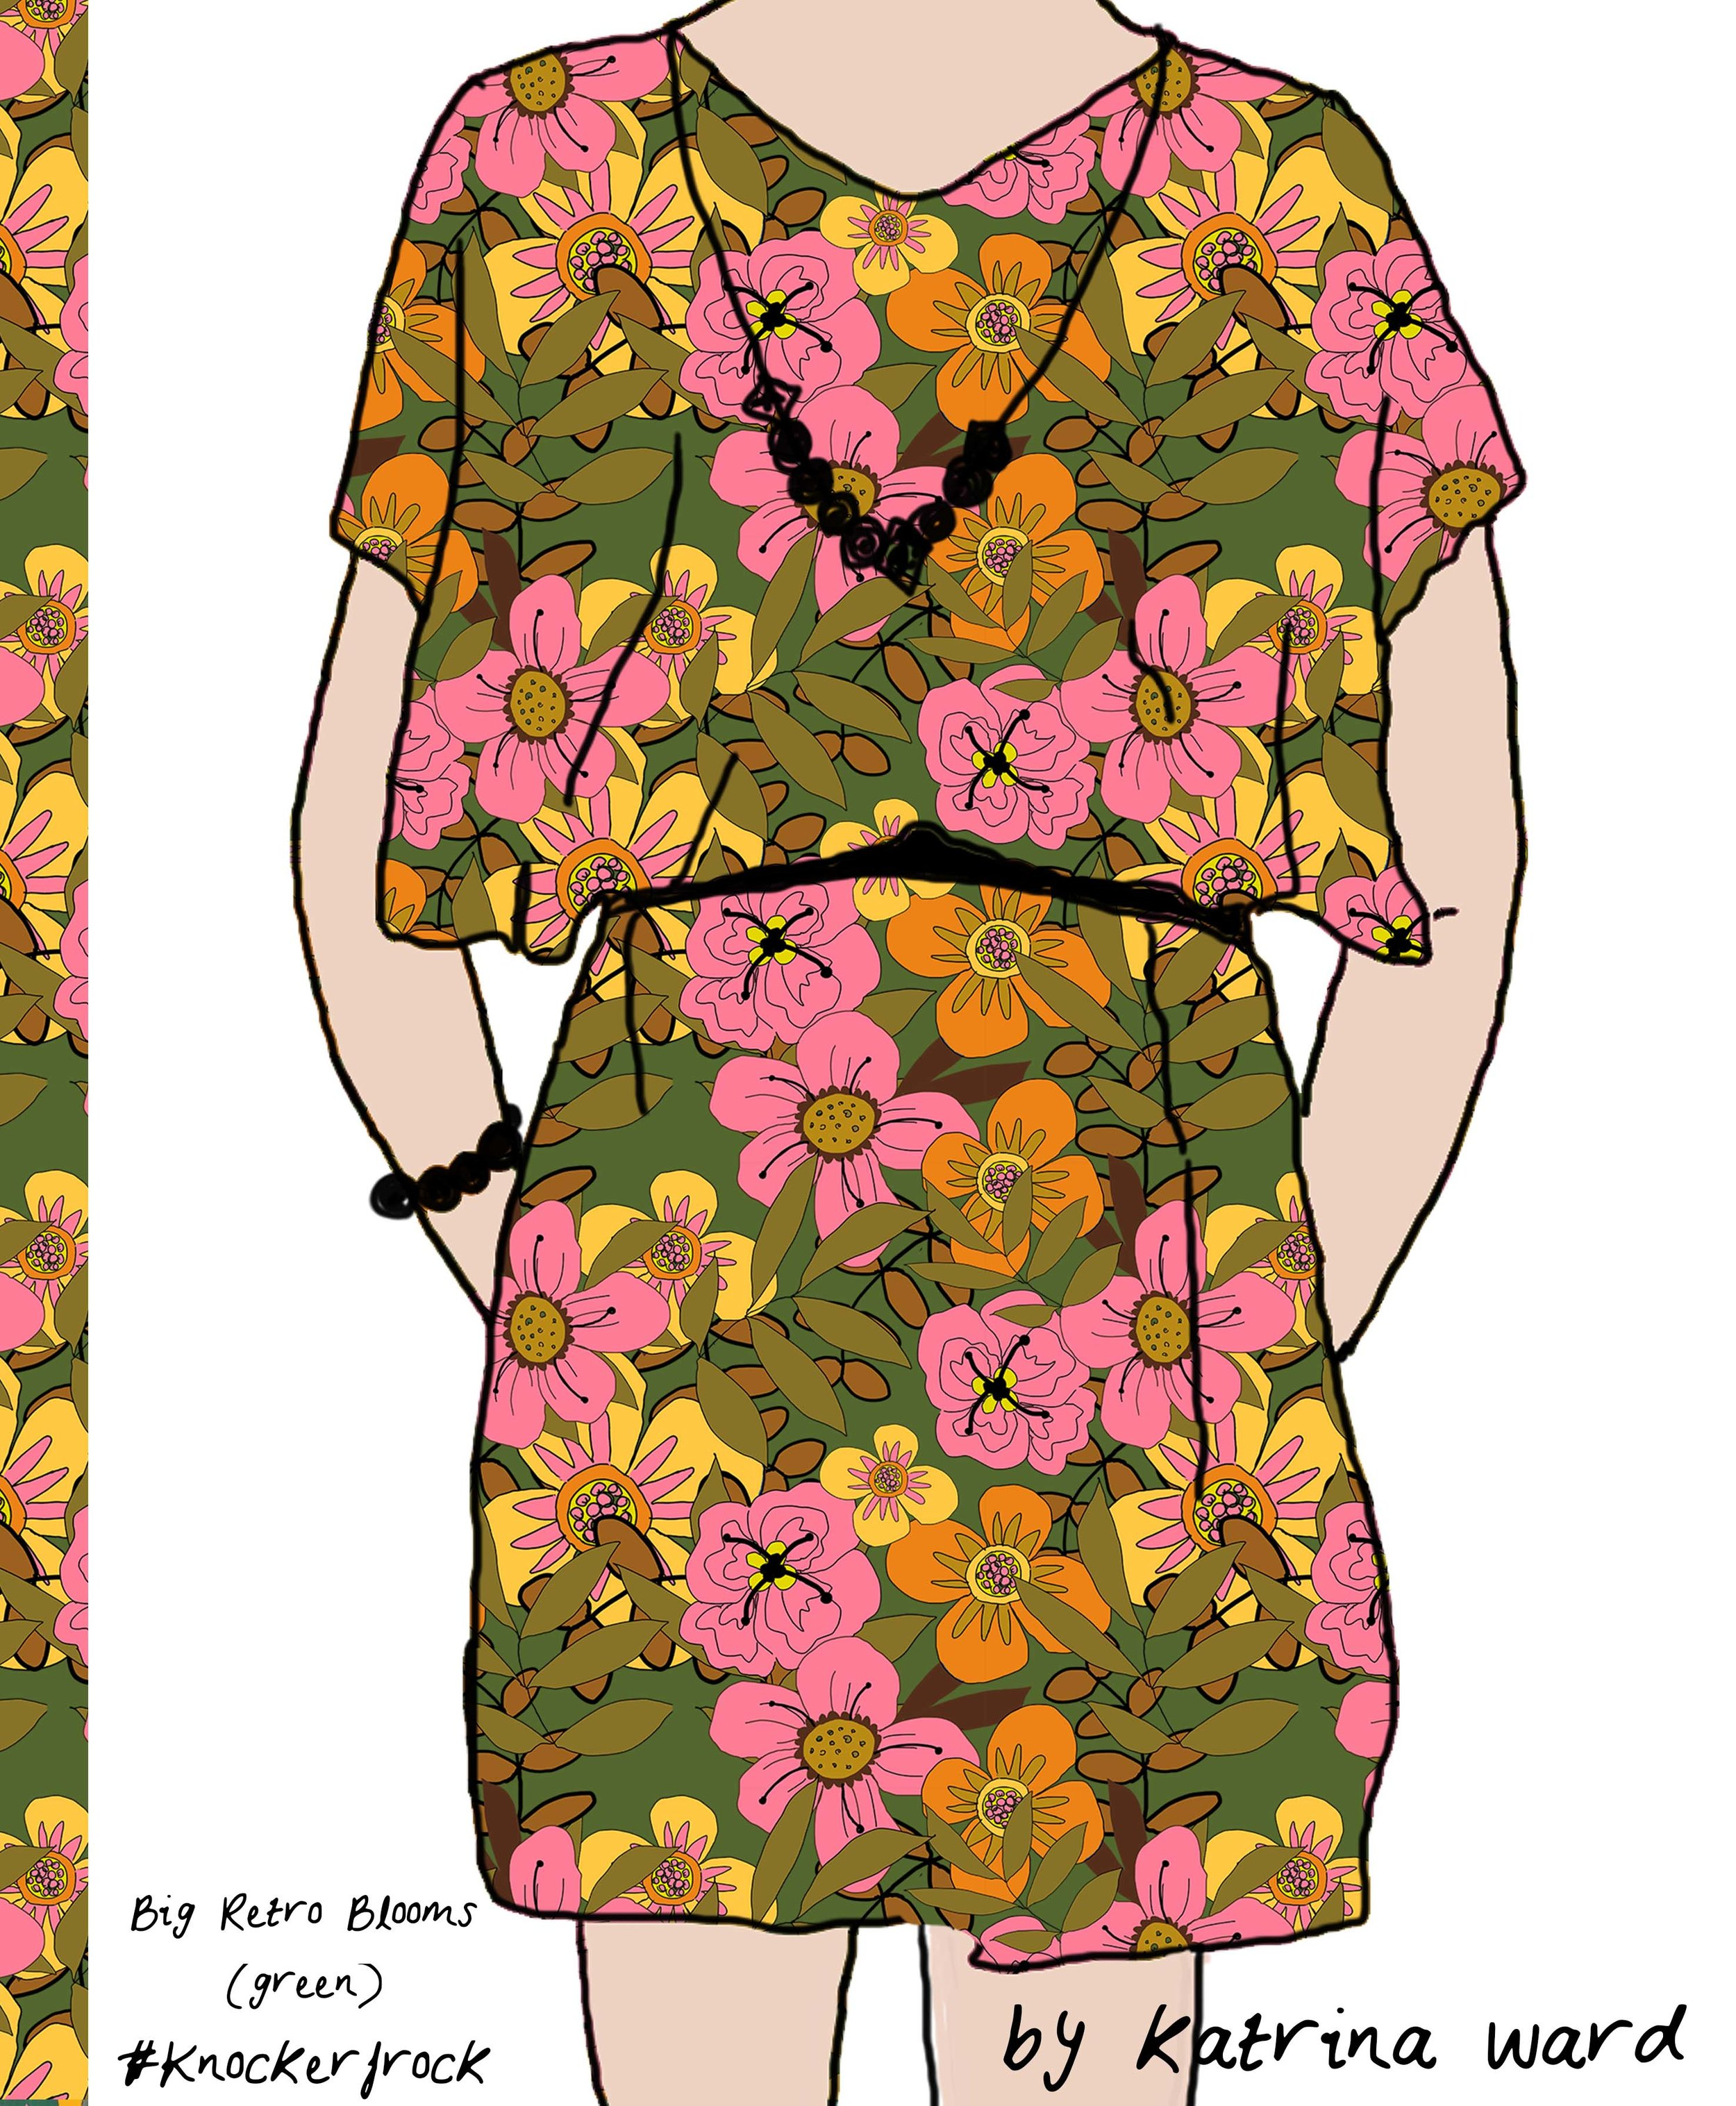 big retro blooms knockerfrock.jpg